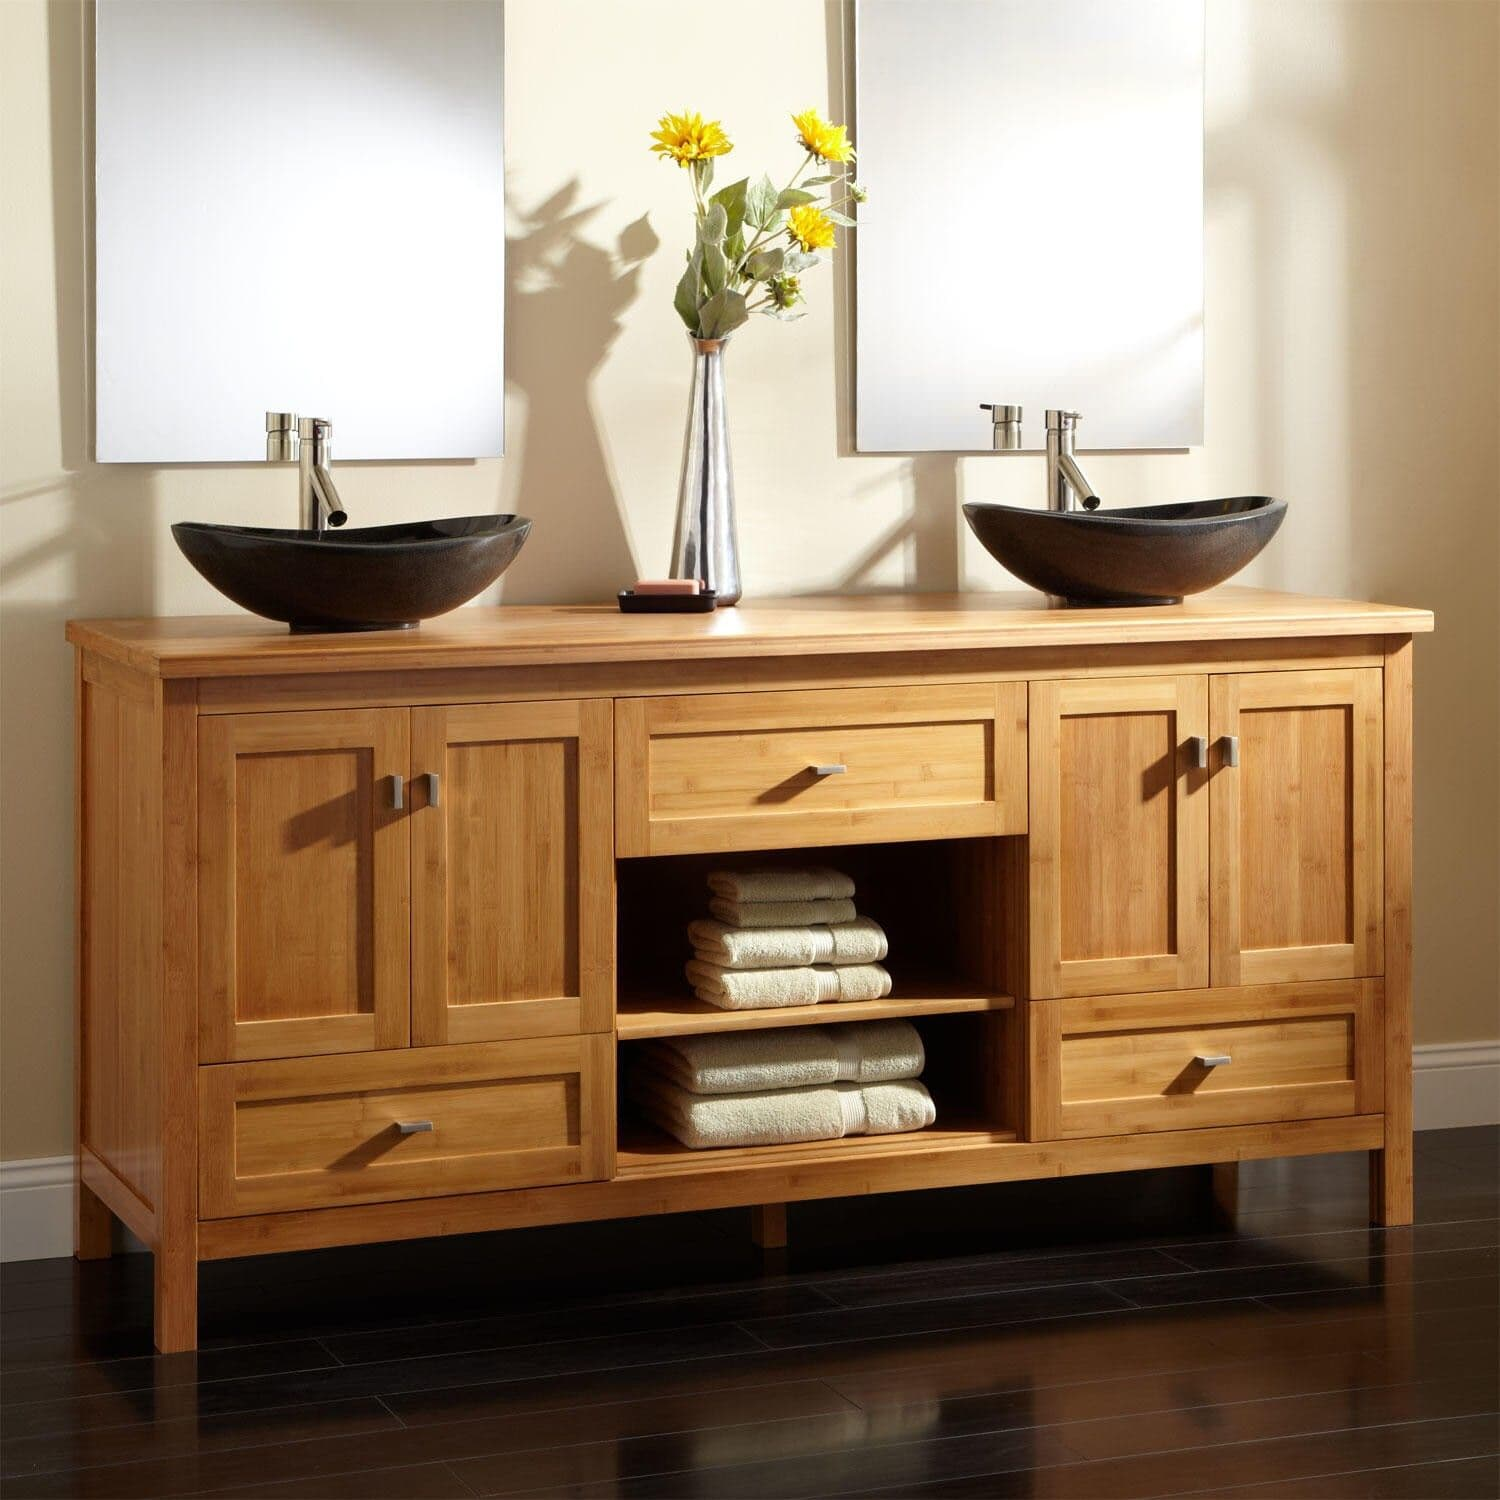 Ontario bathroom vanities -  Bathroom Vanities Ontario 34 Download